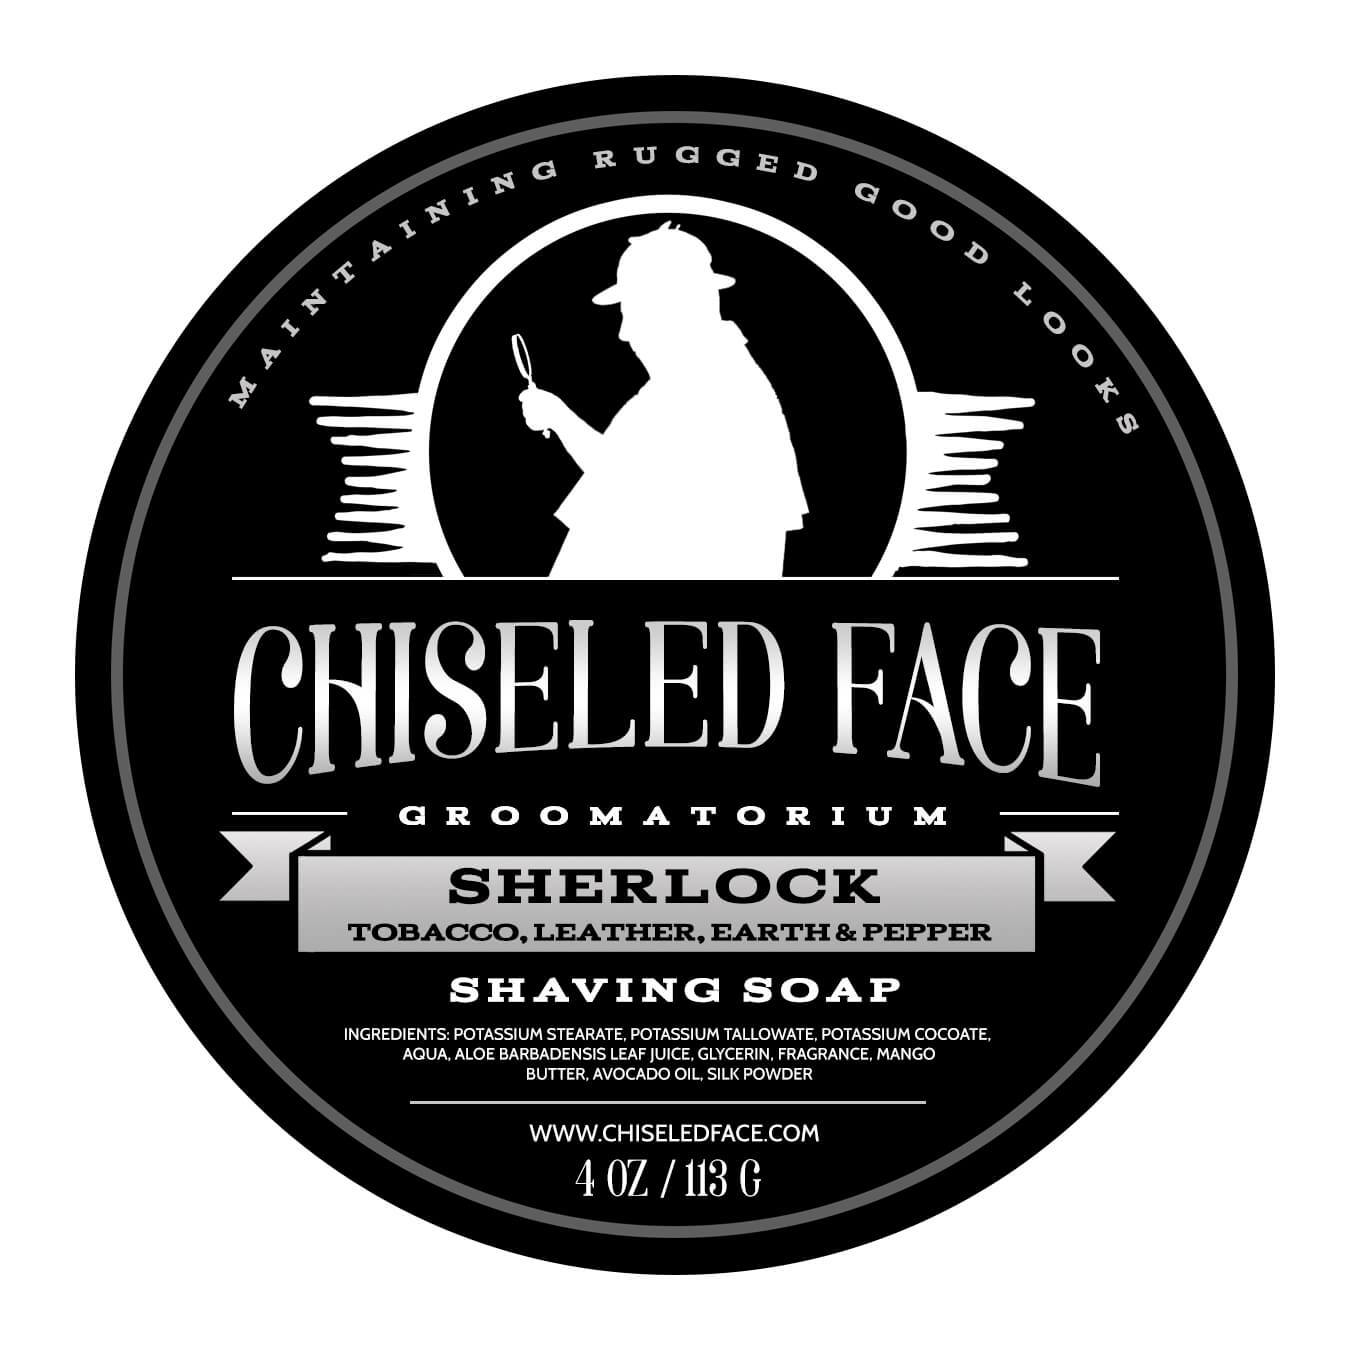 Chiseled Face - Sherlock - Soap image